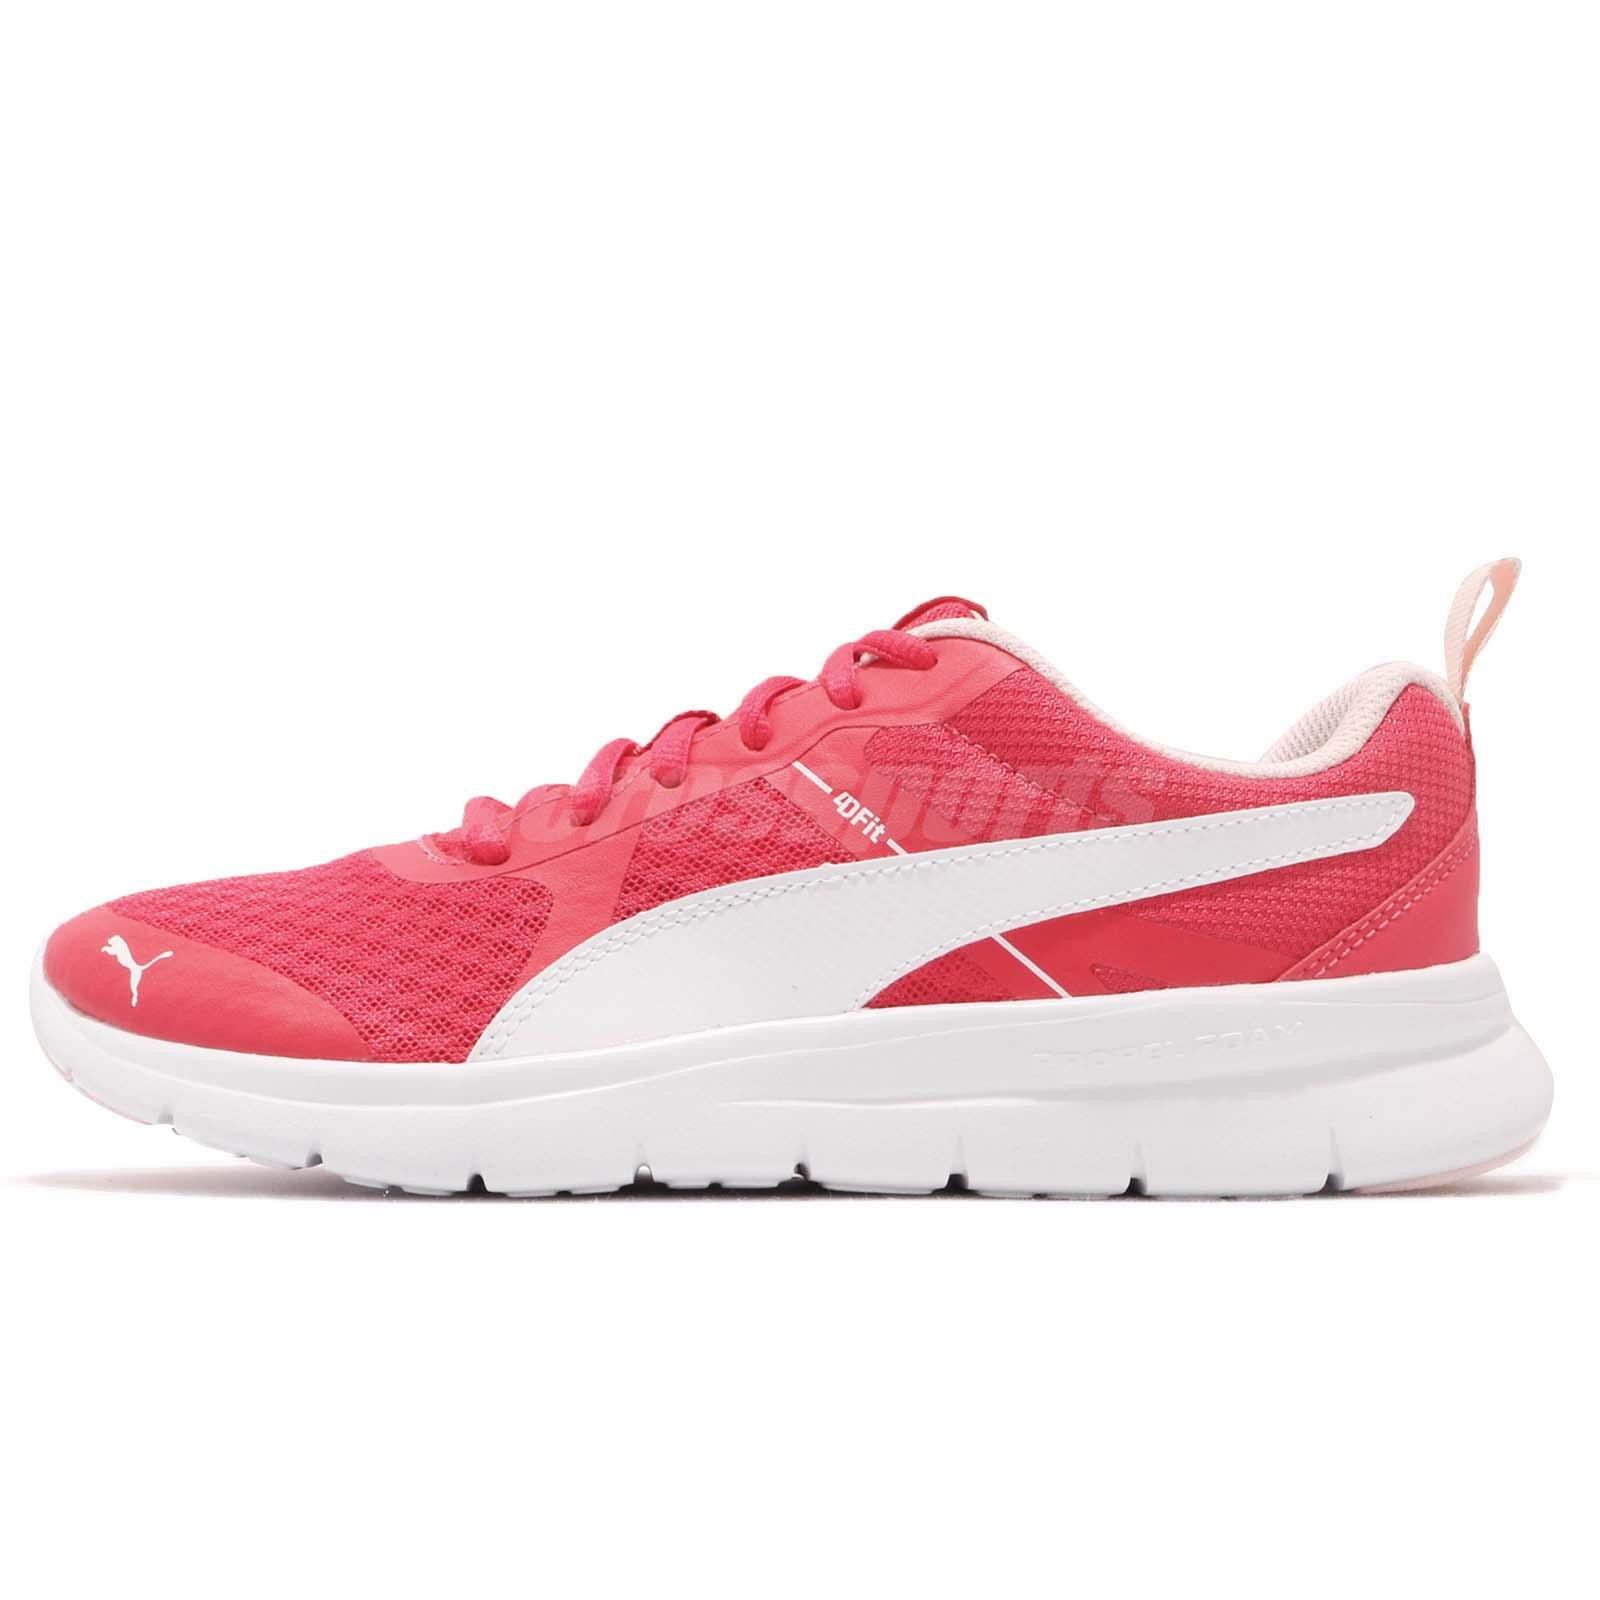 86eac3670fc7 Puma Flex Essential Pink White Men Women Running Shoes Sneakers 365268-06